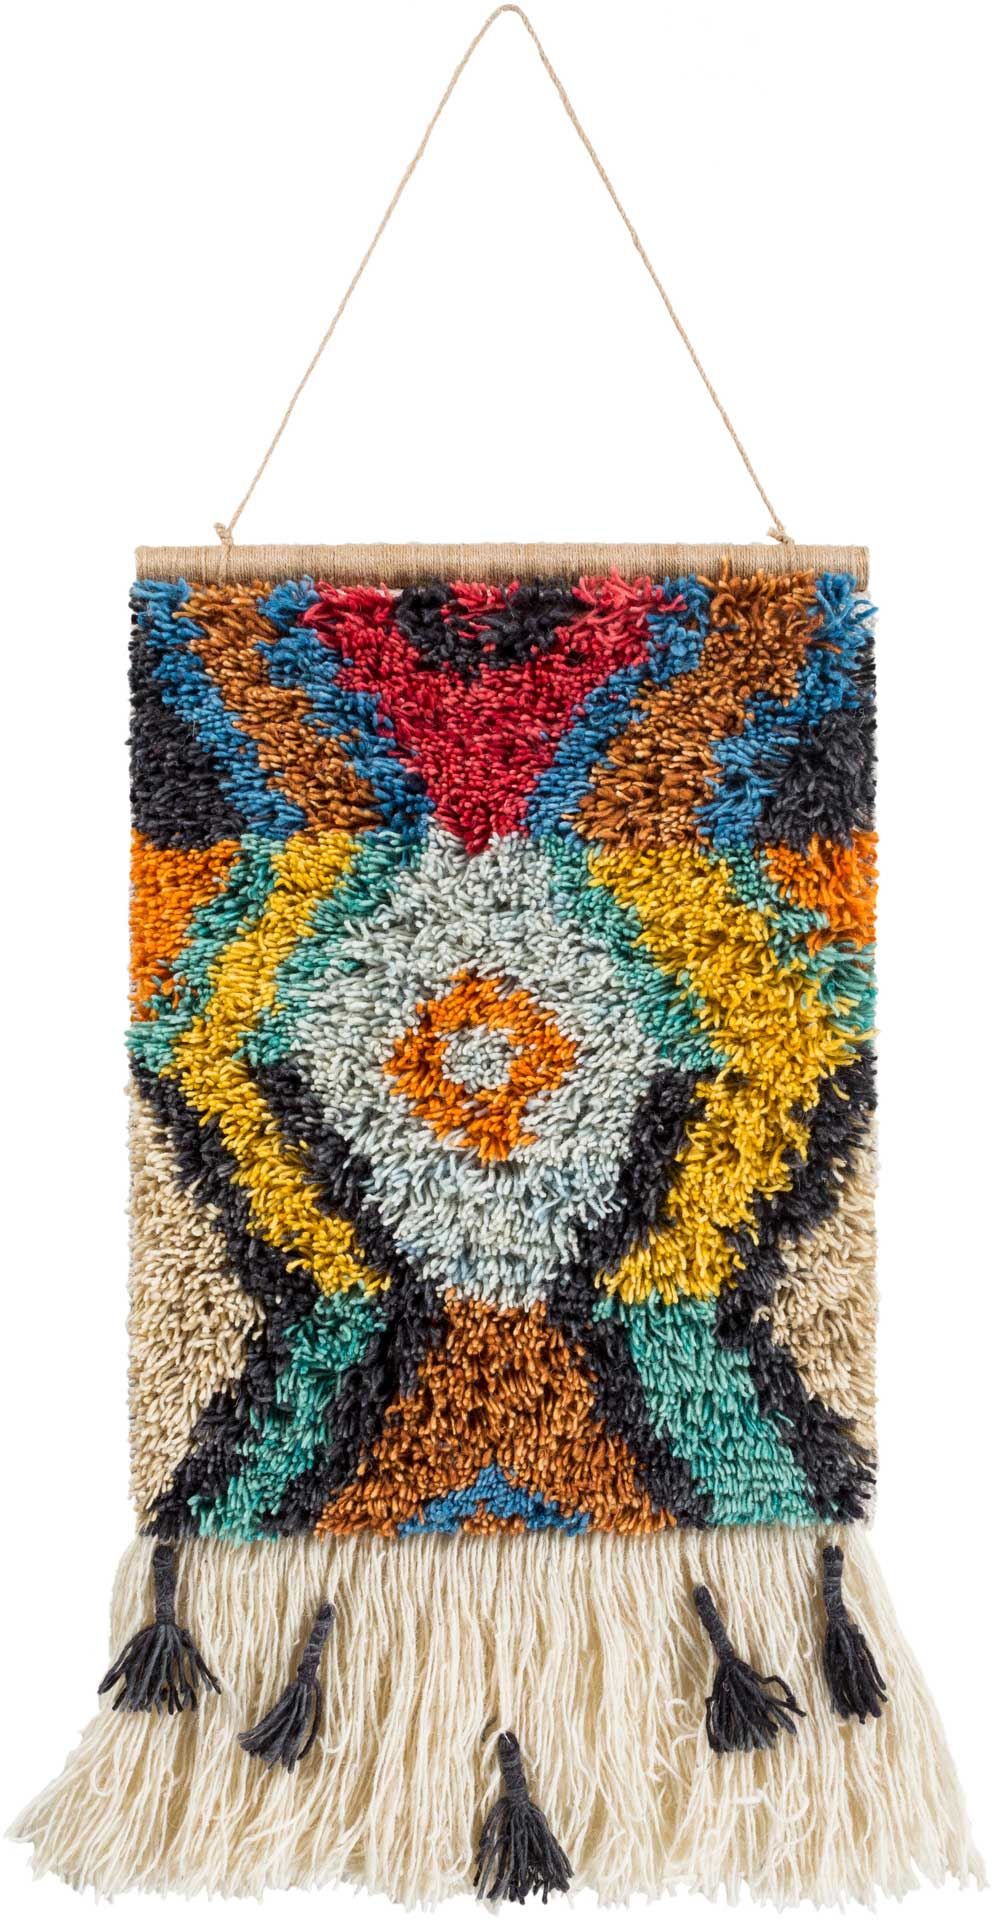 Safura Wall Hanging Saffron/Sea Foam/Bright Orange